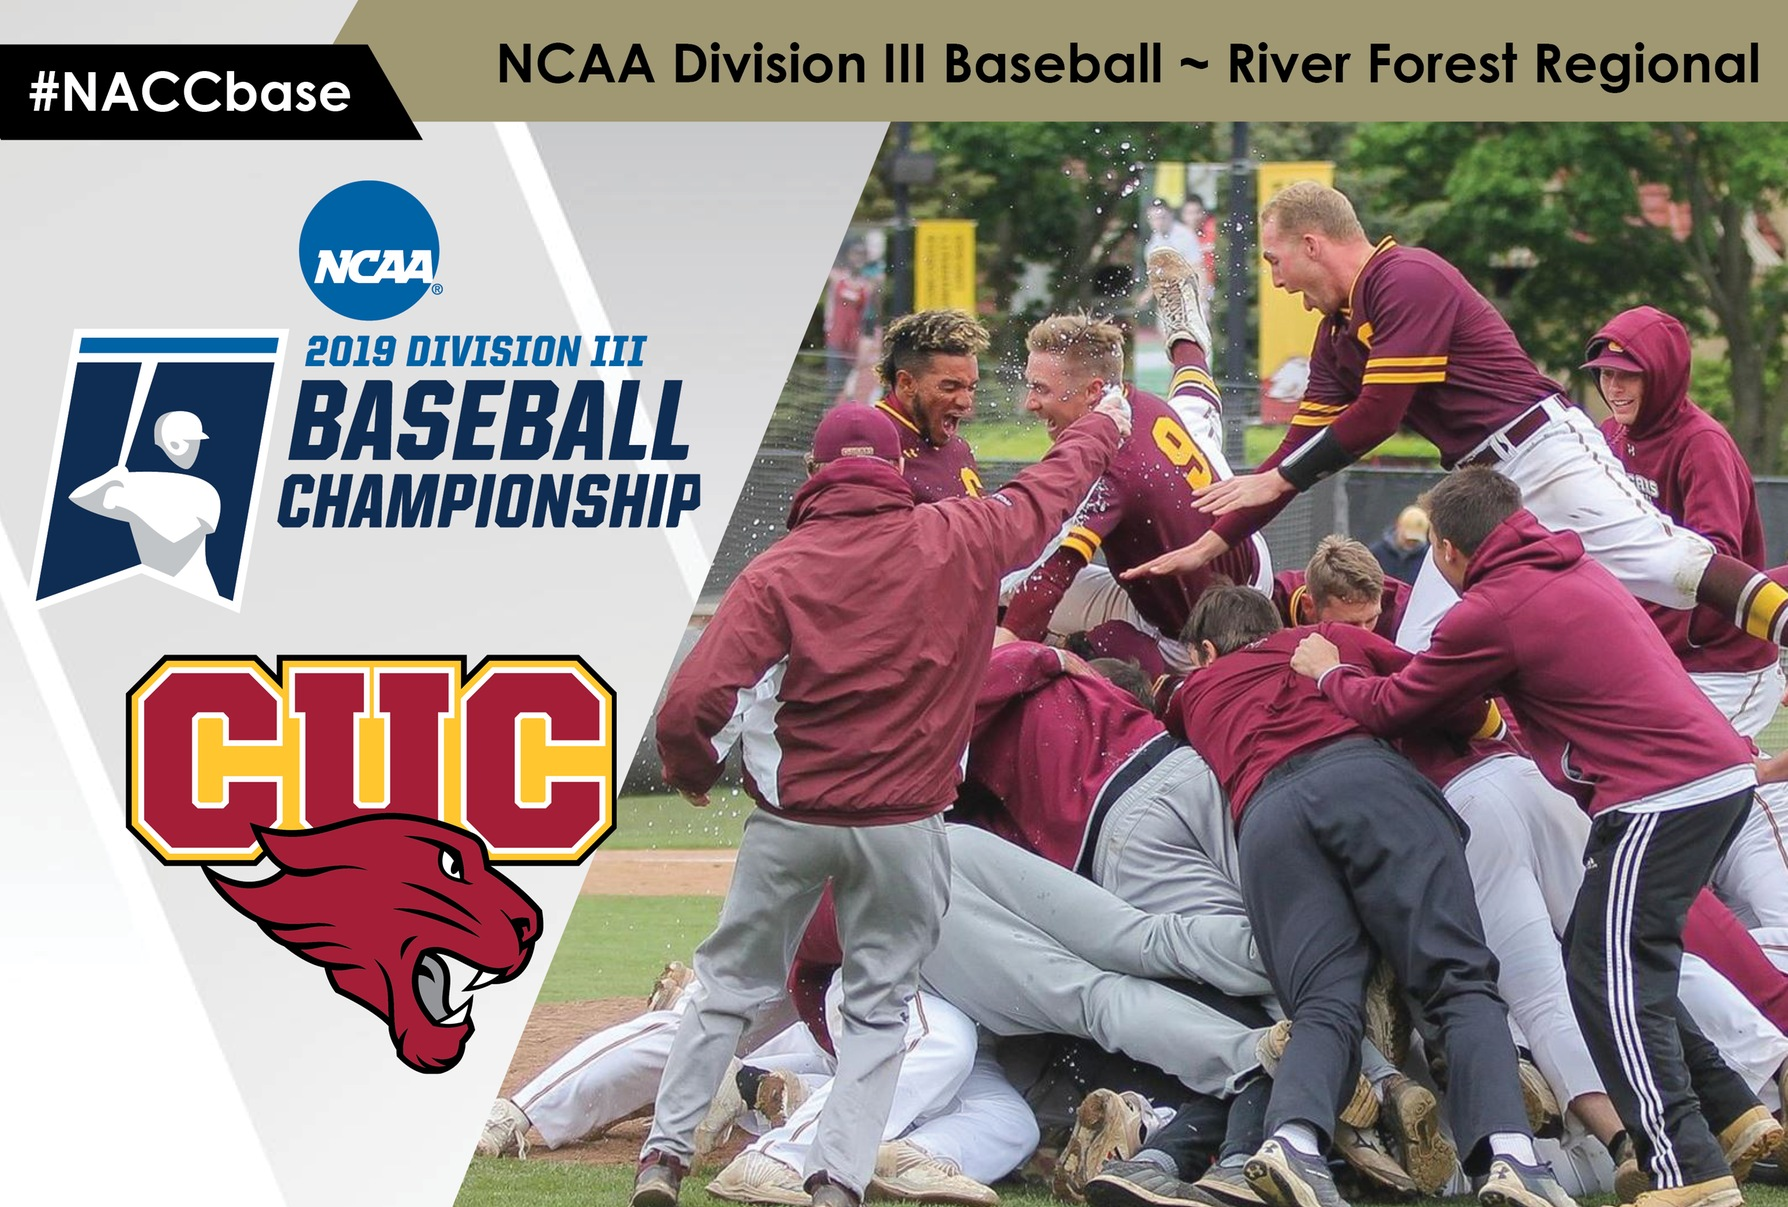 Concordia Chicago defeated Baldwin Wallace, 5-3, to win the River Forest Regional of the NCAA Division III Baseball Championship.